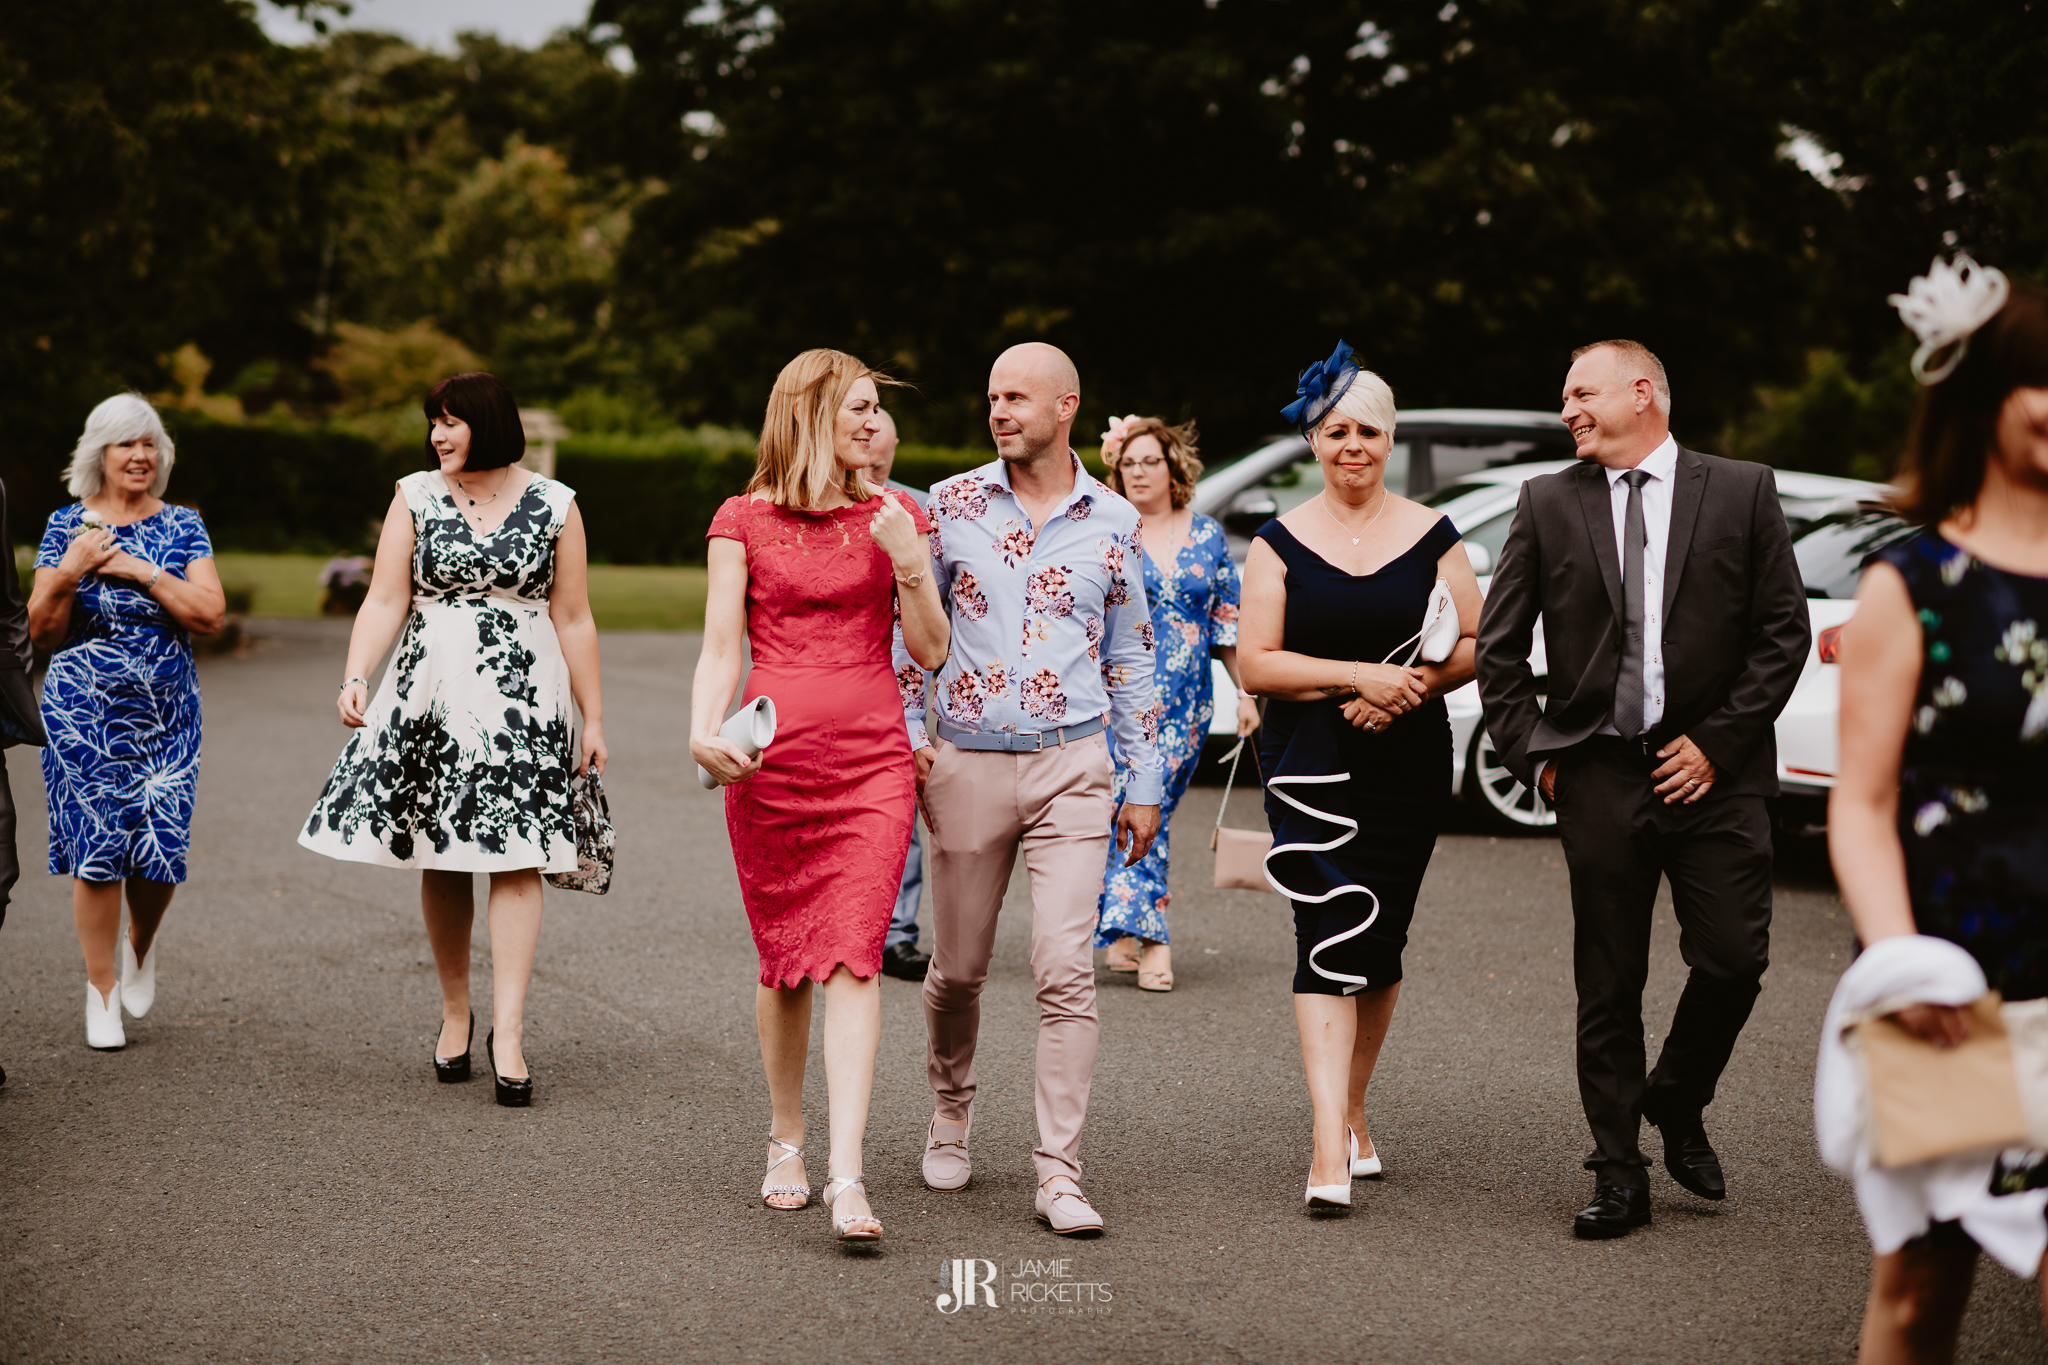 Wroxeter-Hotel-Wedding-Photography-In-Shropshire-By-Shropshire-Wedding-Photographer-Jamie-Ricketts-083.JPG